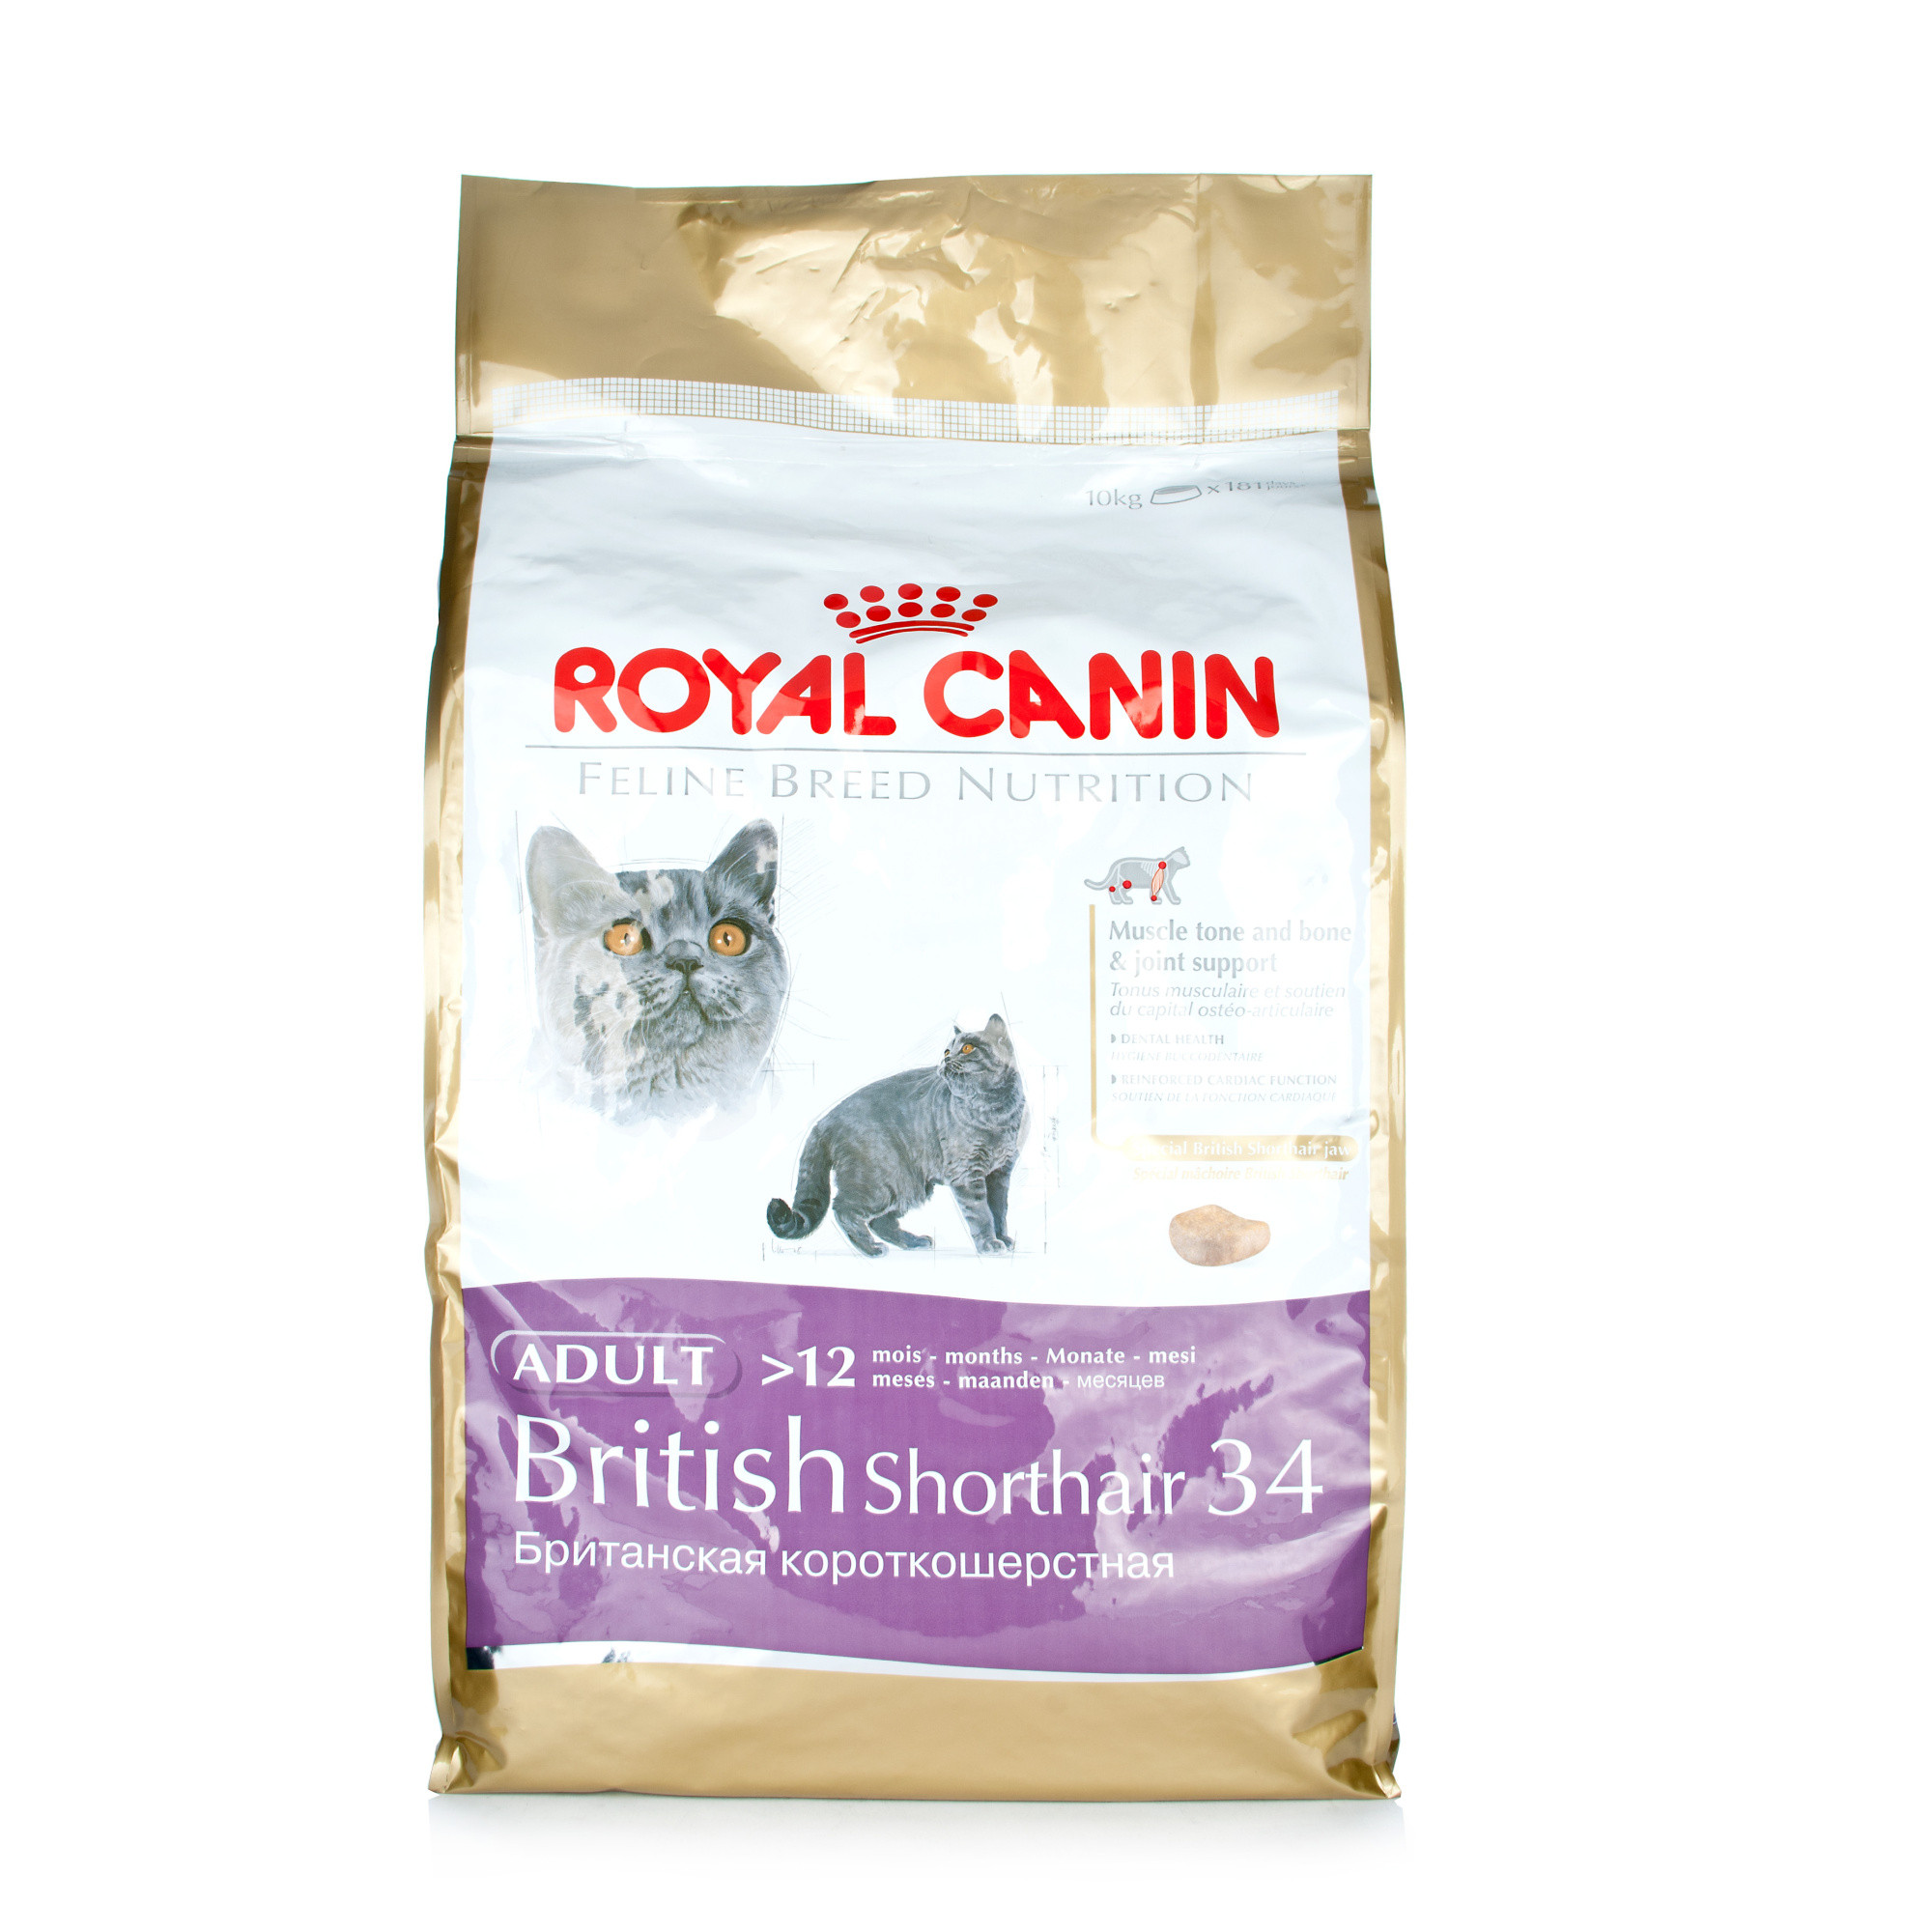 royal canin british short hair 34 10kg cat food chemist direct. Black Bedroom Furniture Sets. Home Design Ideas